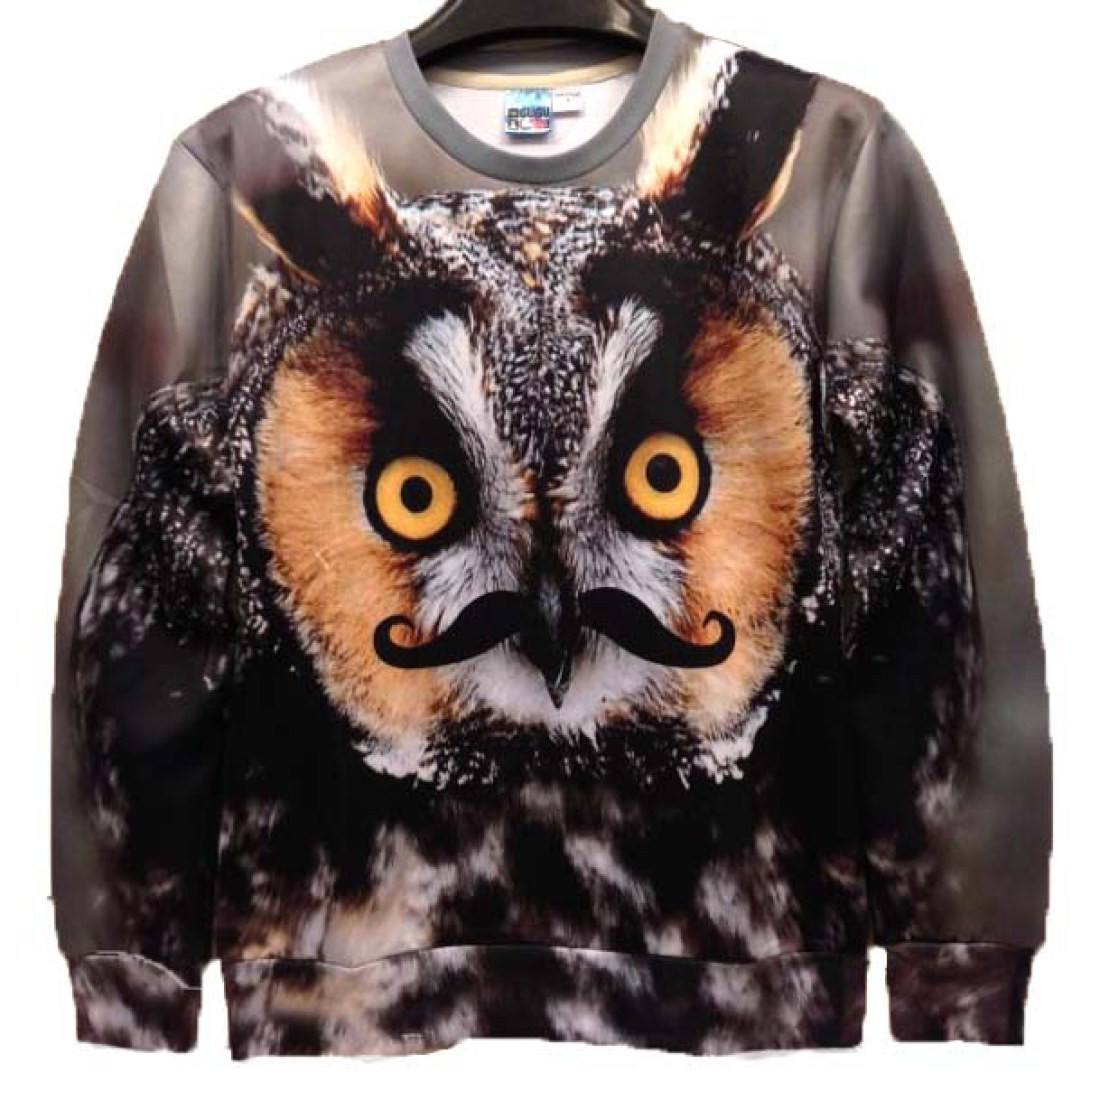 Realistic Owl Face with Mustache Graphic Print Unisex Pullover Sweater